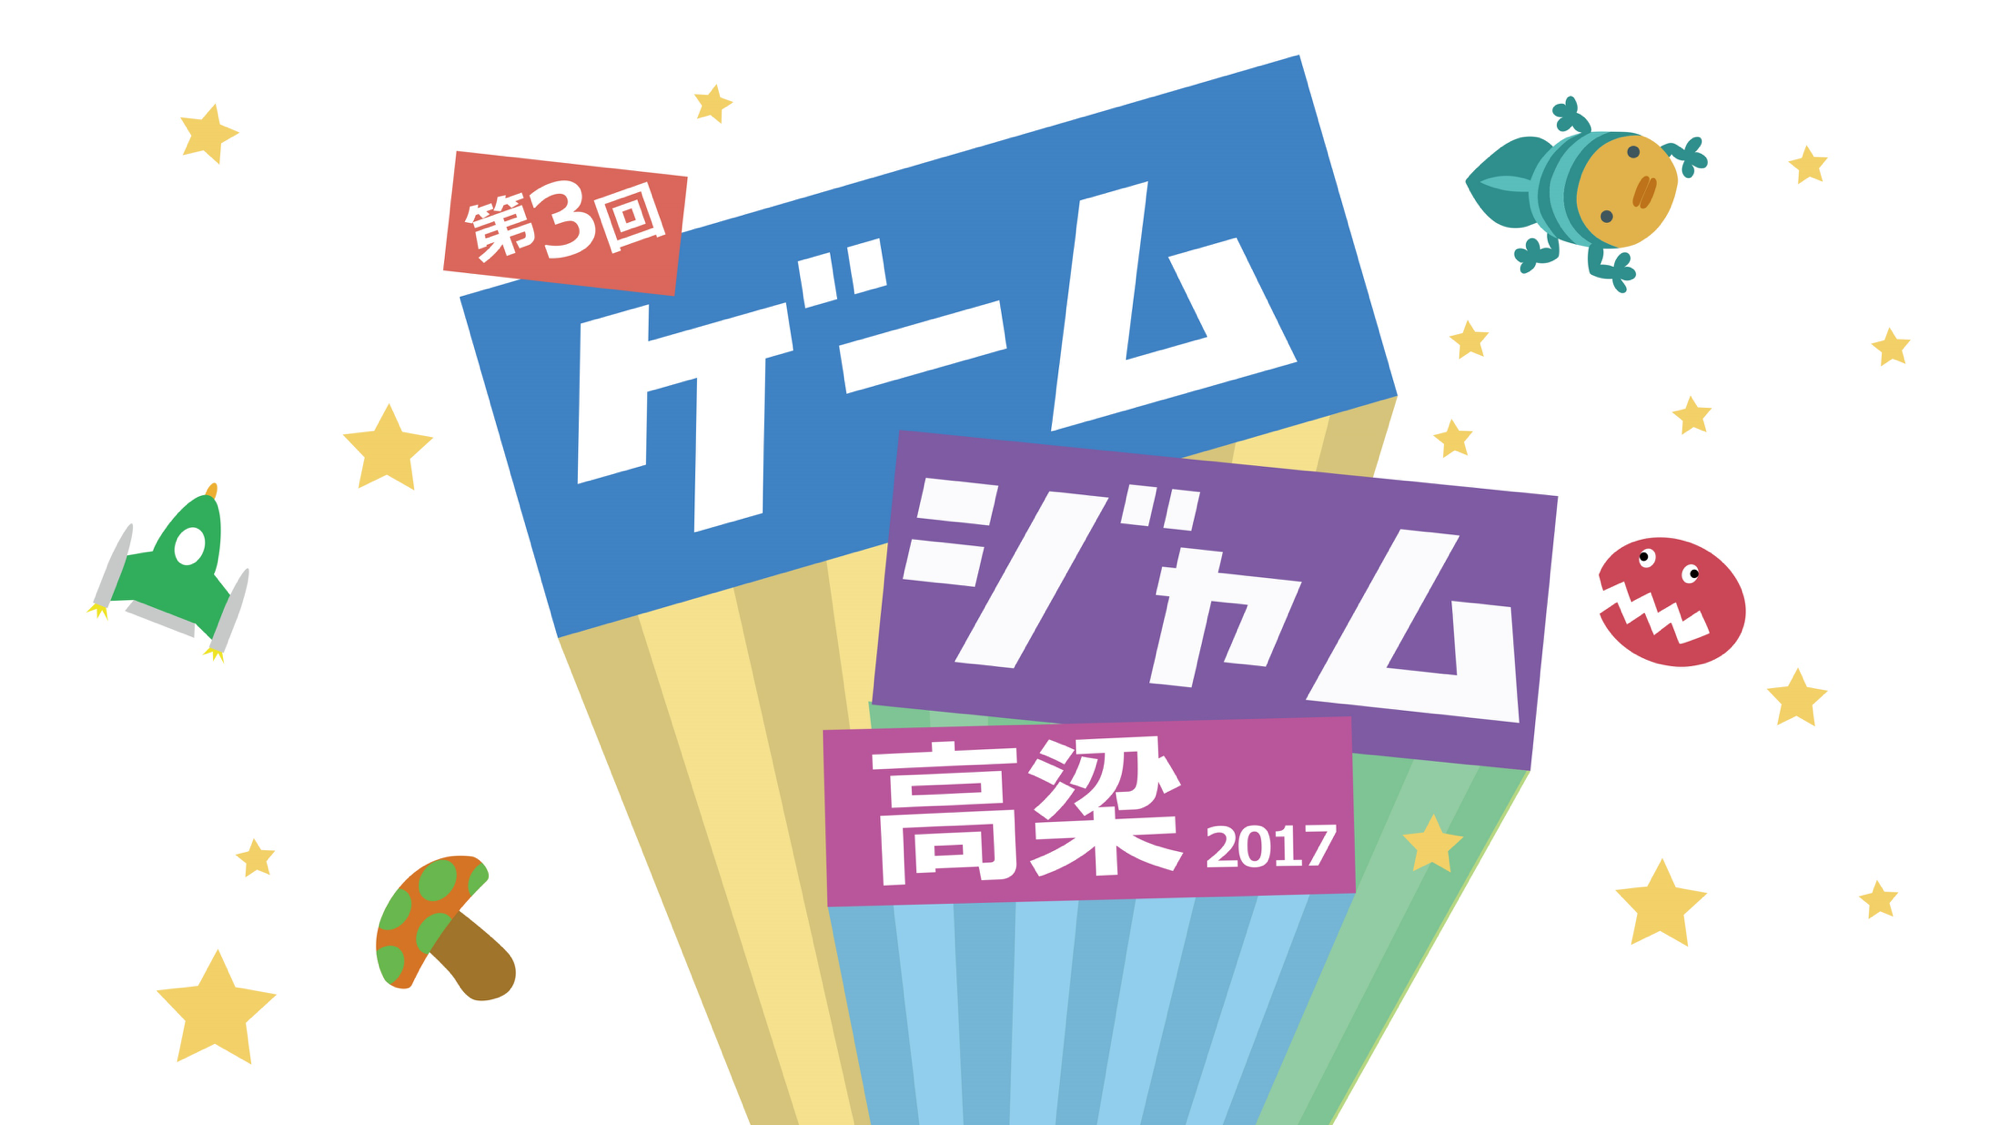 Game Jam Takahashi 2017